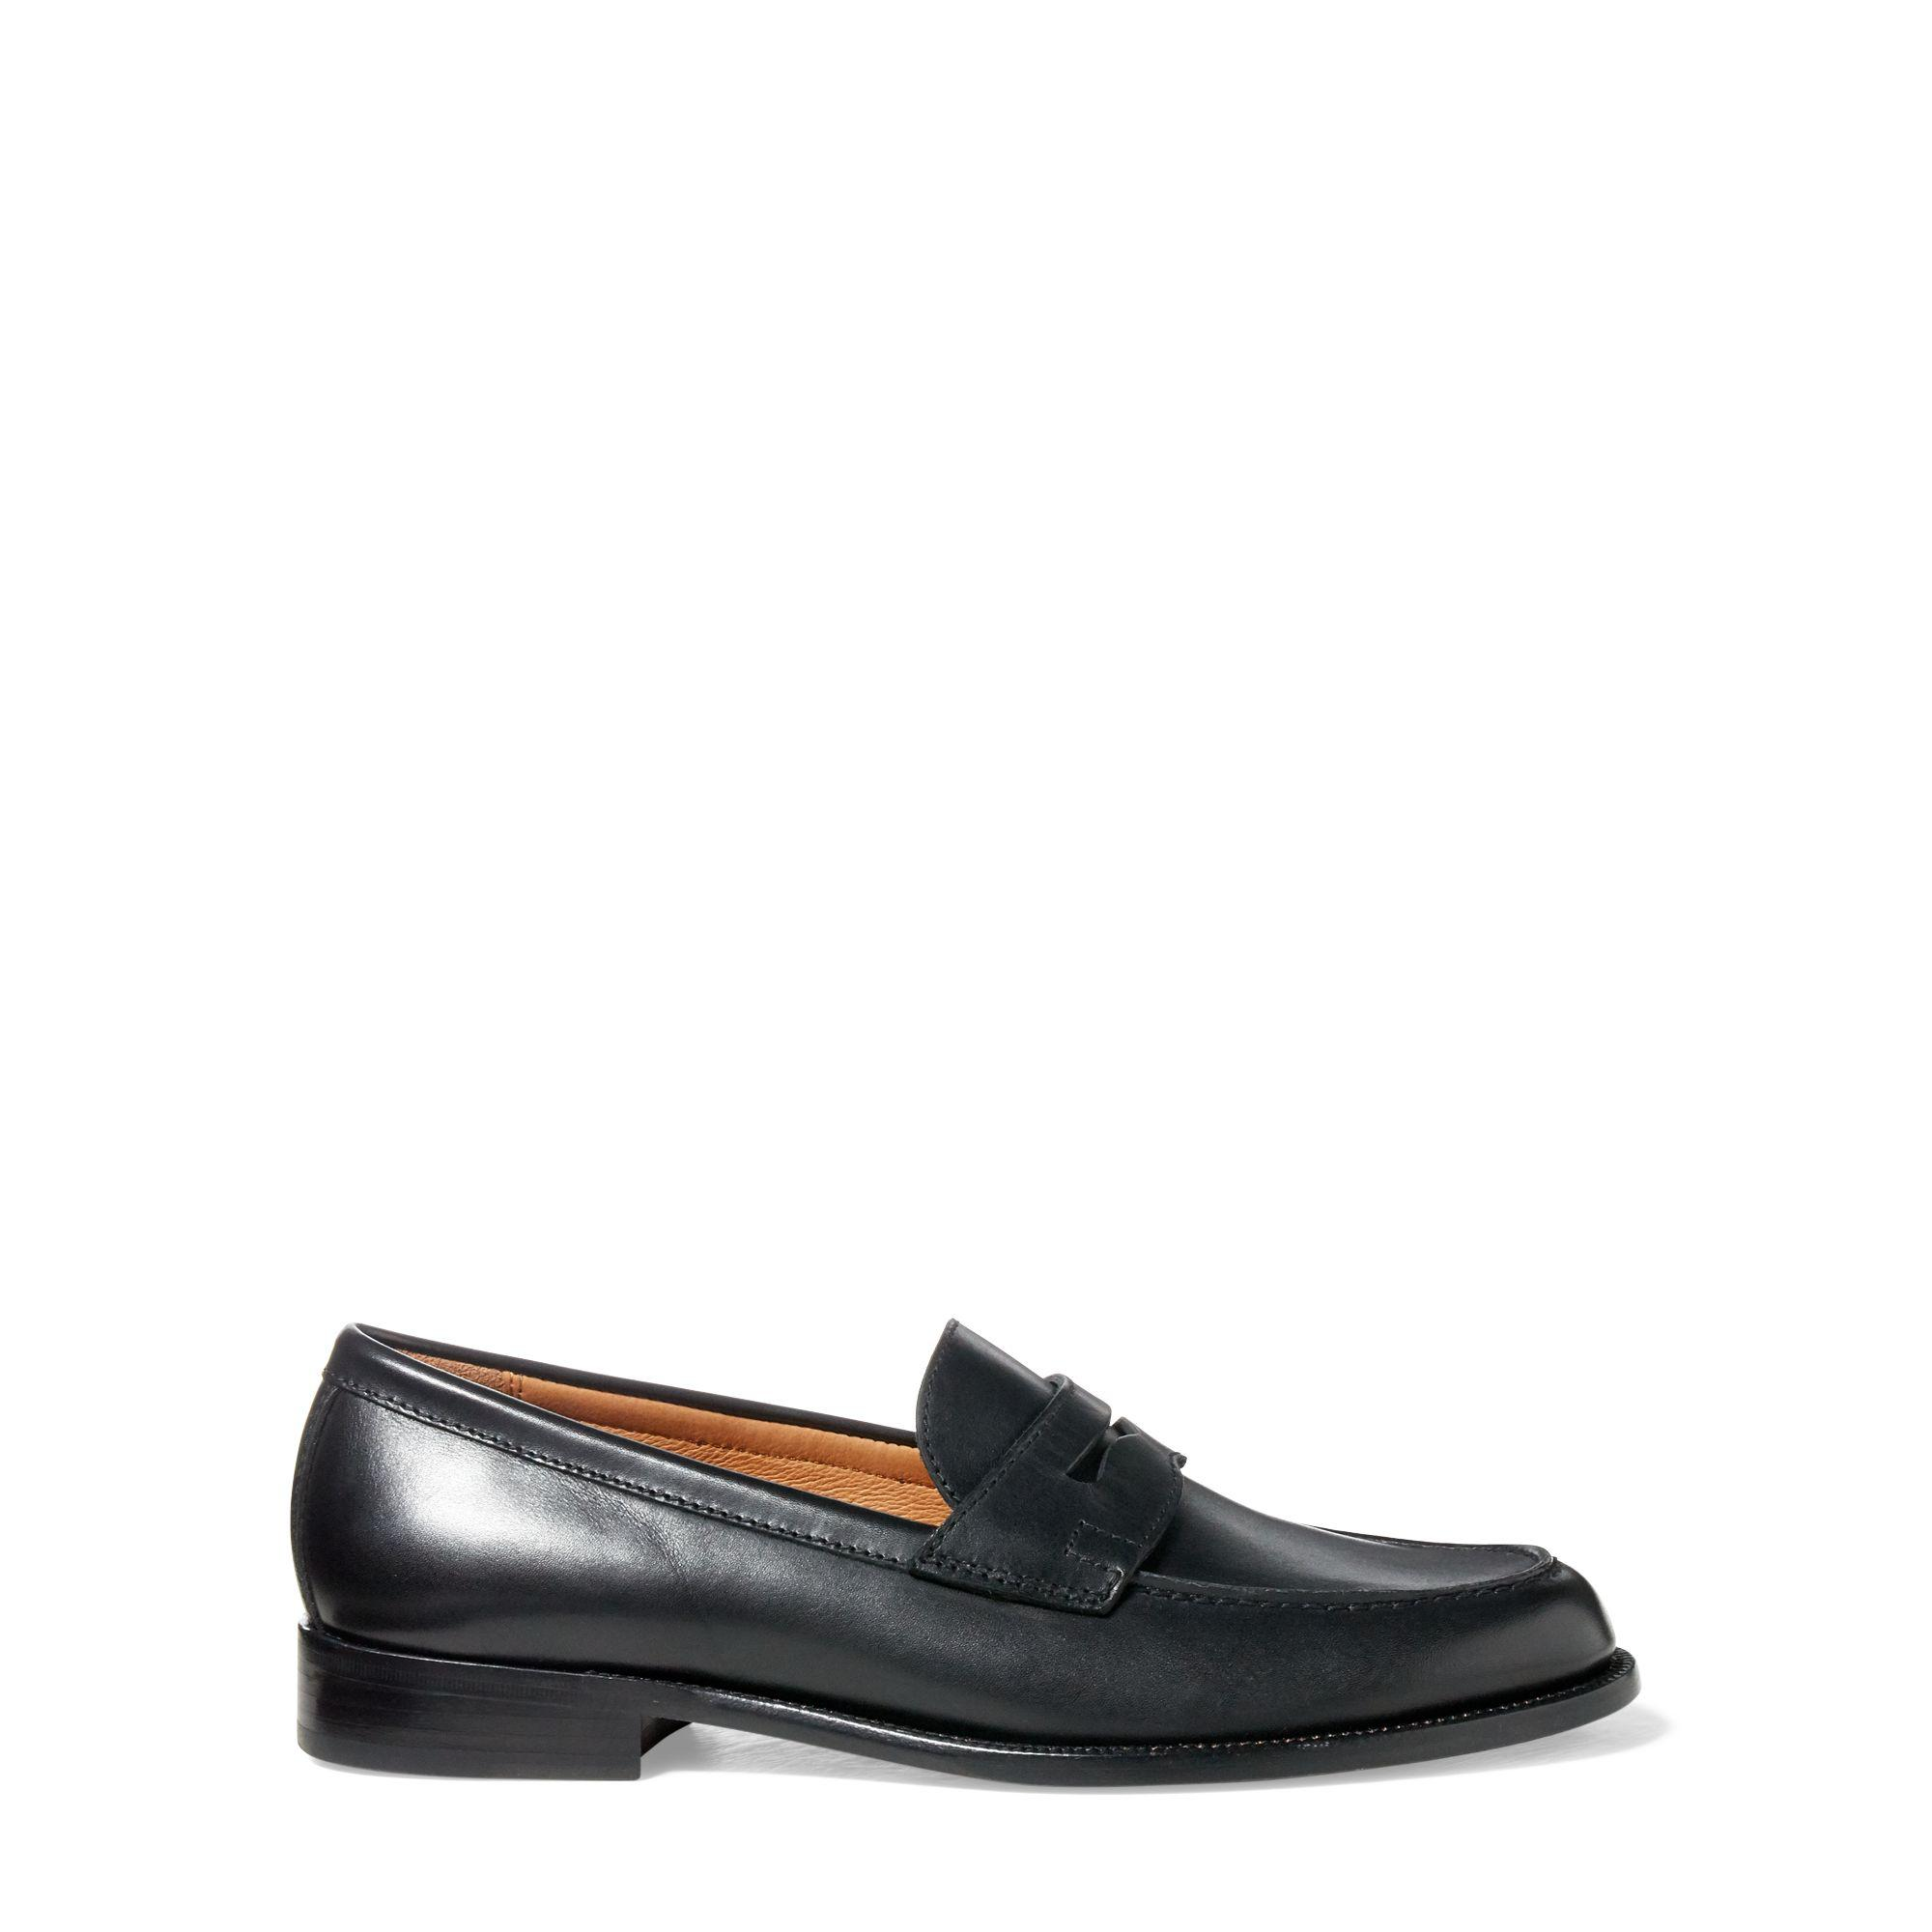 Polo Ralph Lauren. Men's Black Agustin Calfskin Penny Loafer